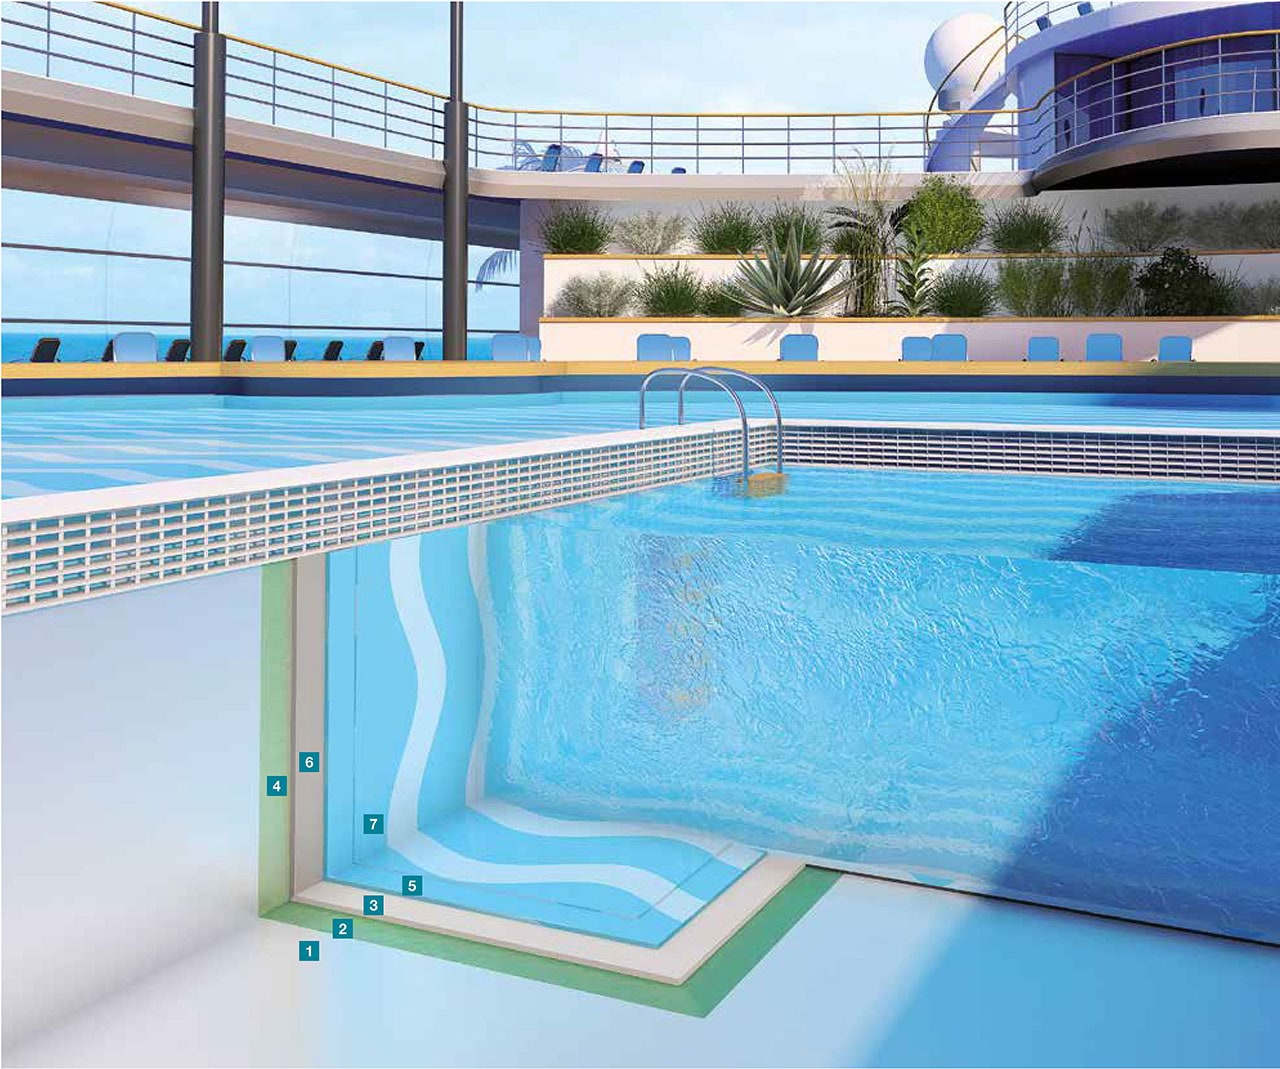 Application of resin for external swimming pool mapei for Swimming pool maintenance software